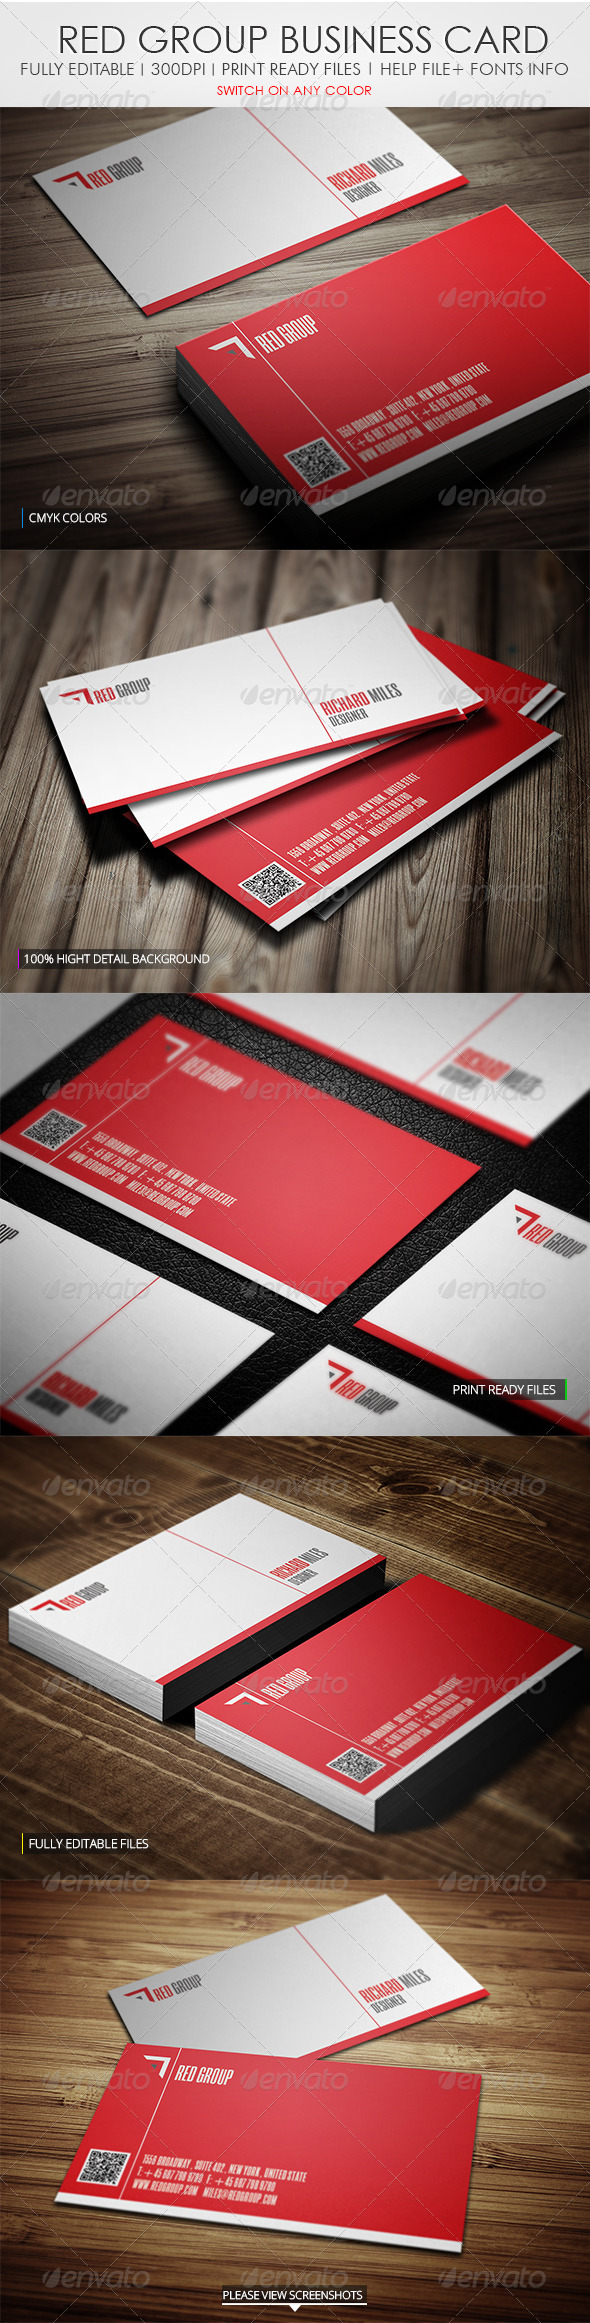 Red Group Business Card - Corporate Business Cards